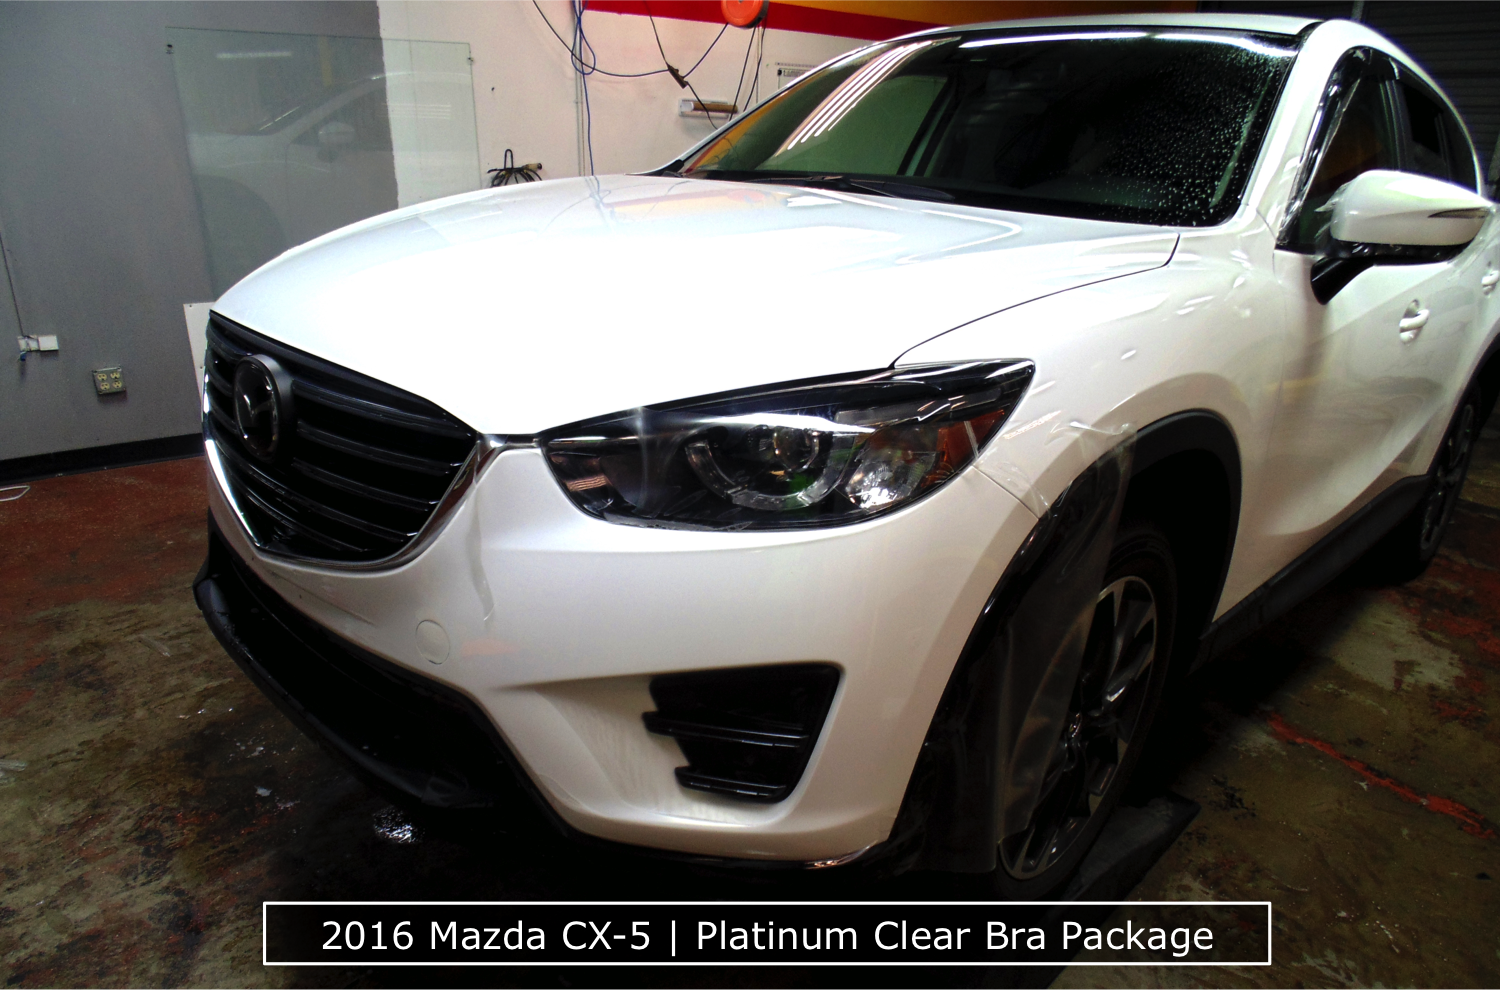 Mazda Clear Bra Package